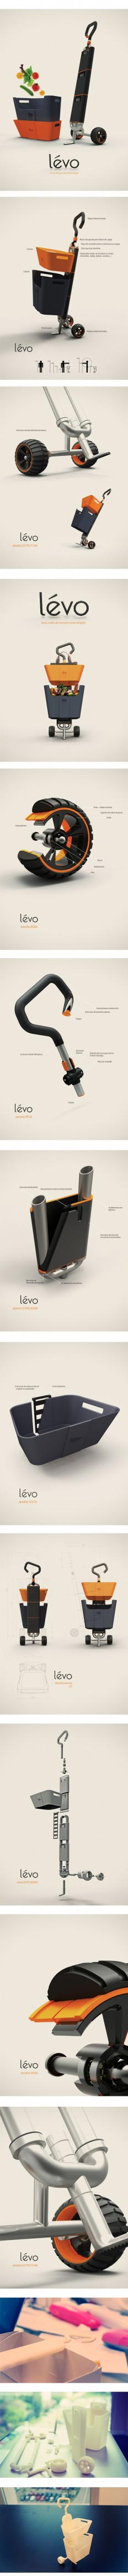 LEVO PRESENTATION LAYOUT | Product Design | Pinterest